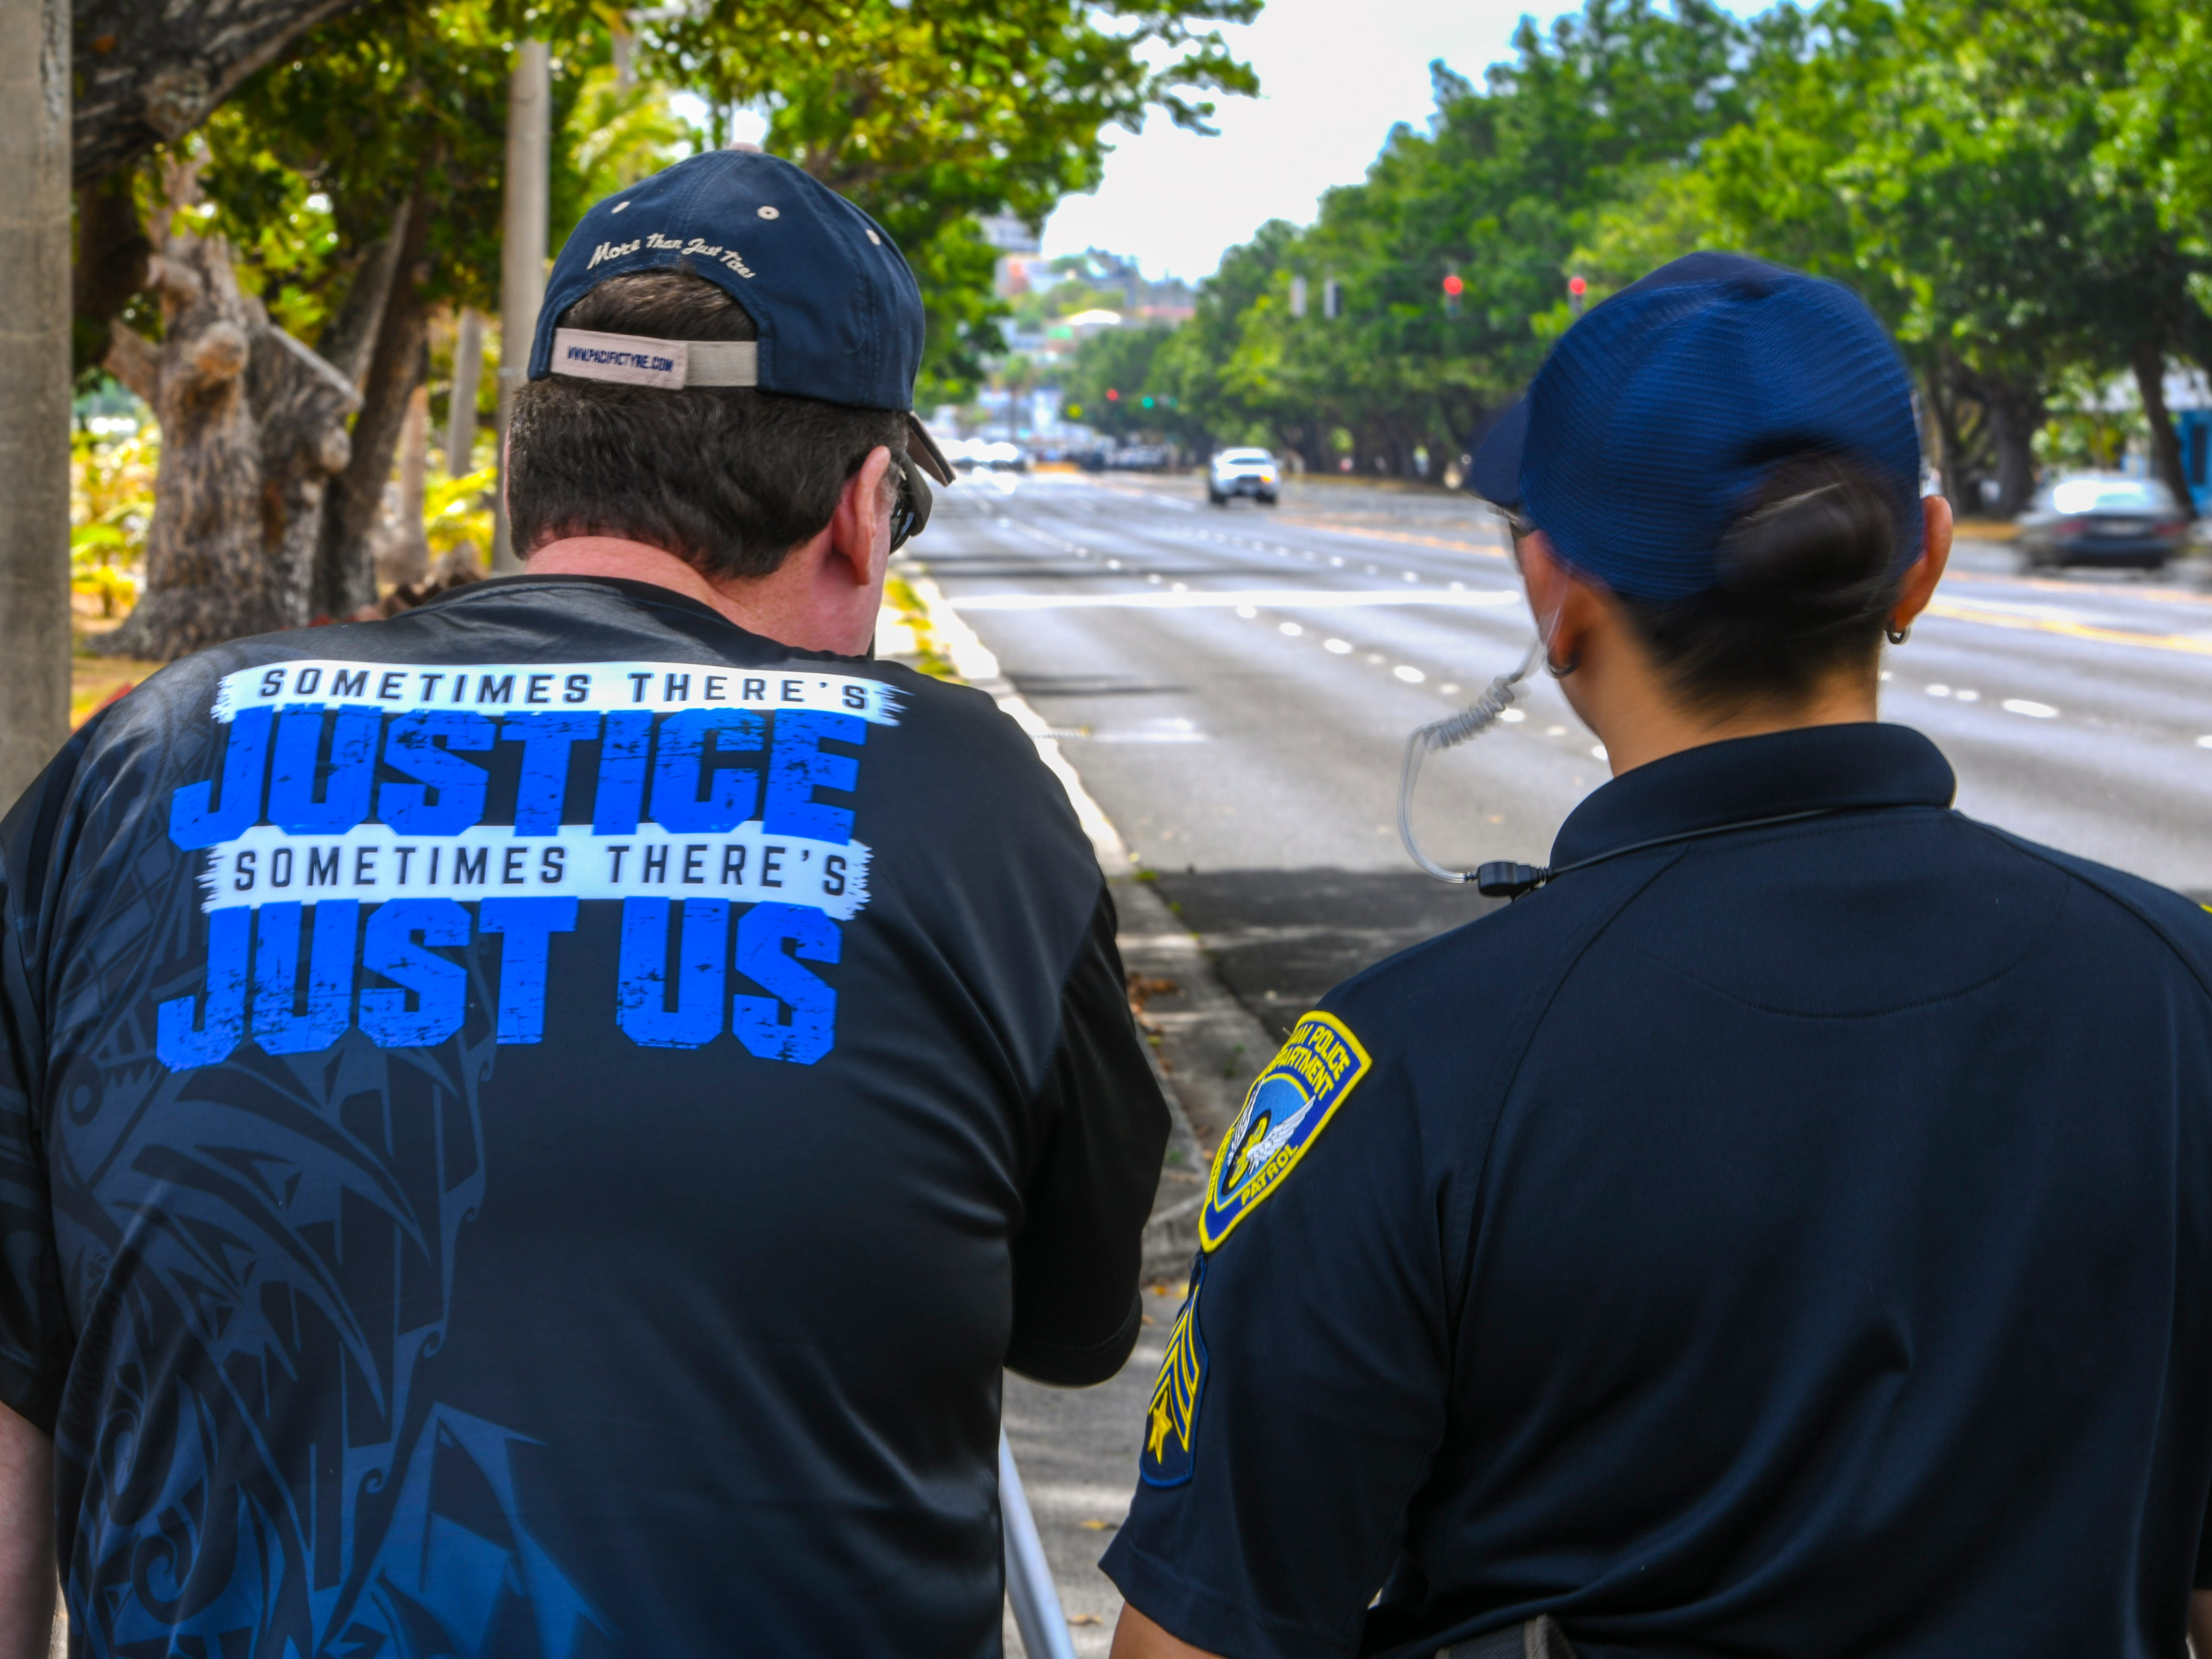 Don Perron, left, Pacific Tyre operations manager, tries his hand at operating a laser speed gun during a demonstration by the Guam Police Department's Highway Patrol Division in Anigua on Tuesday, May 14, 2019.